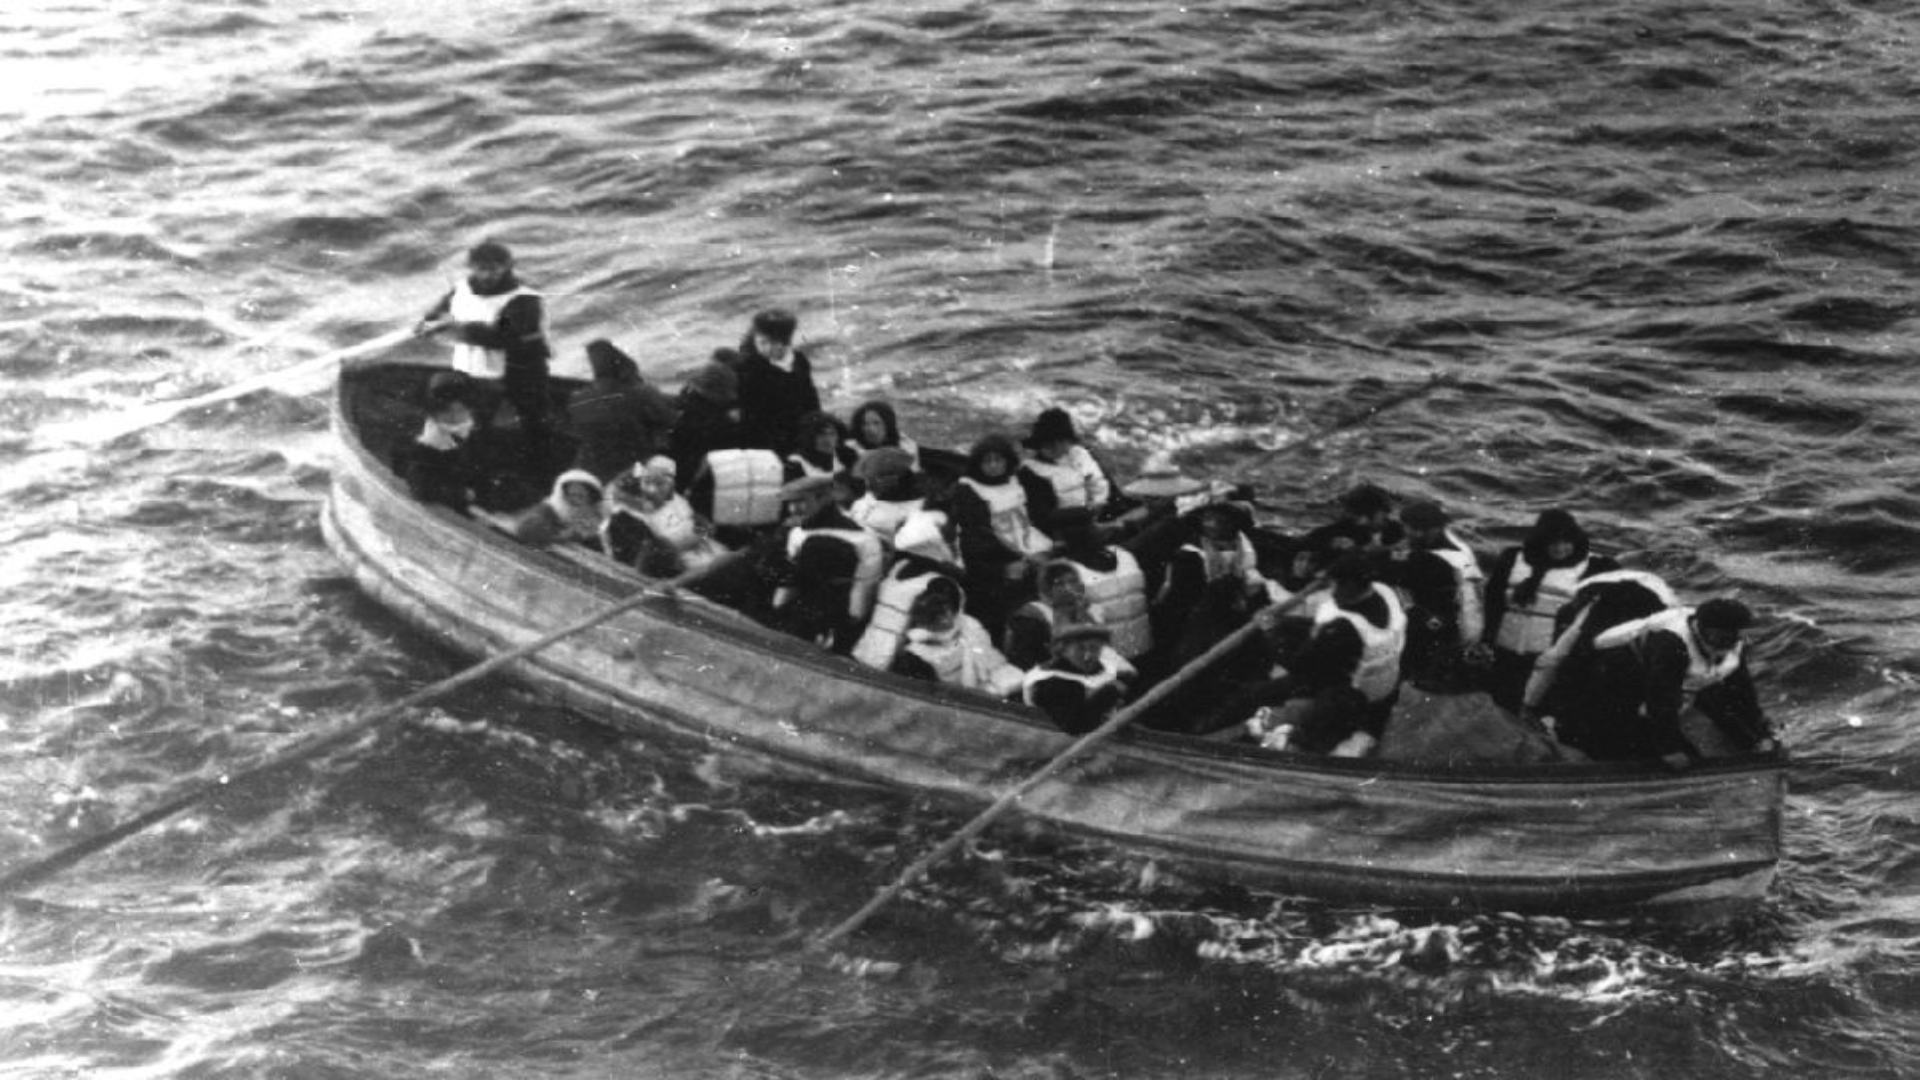 How did passenger class affect survival on the Titanic?